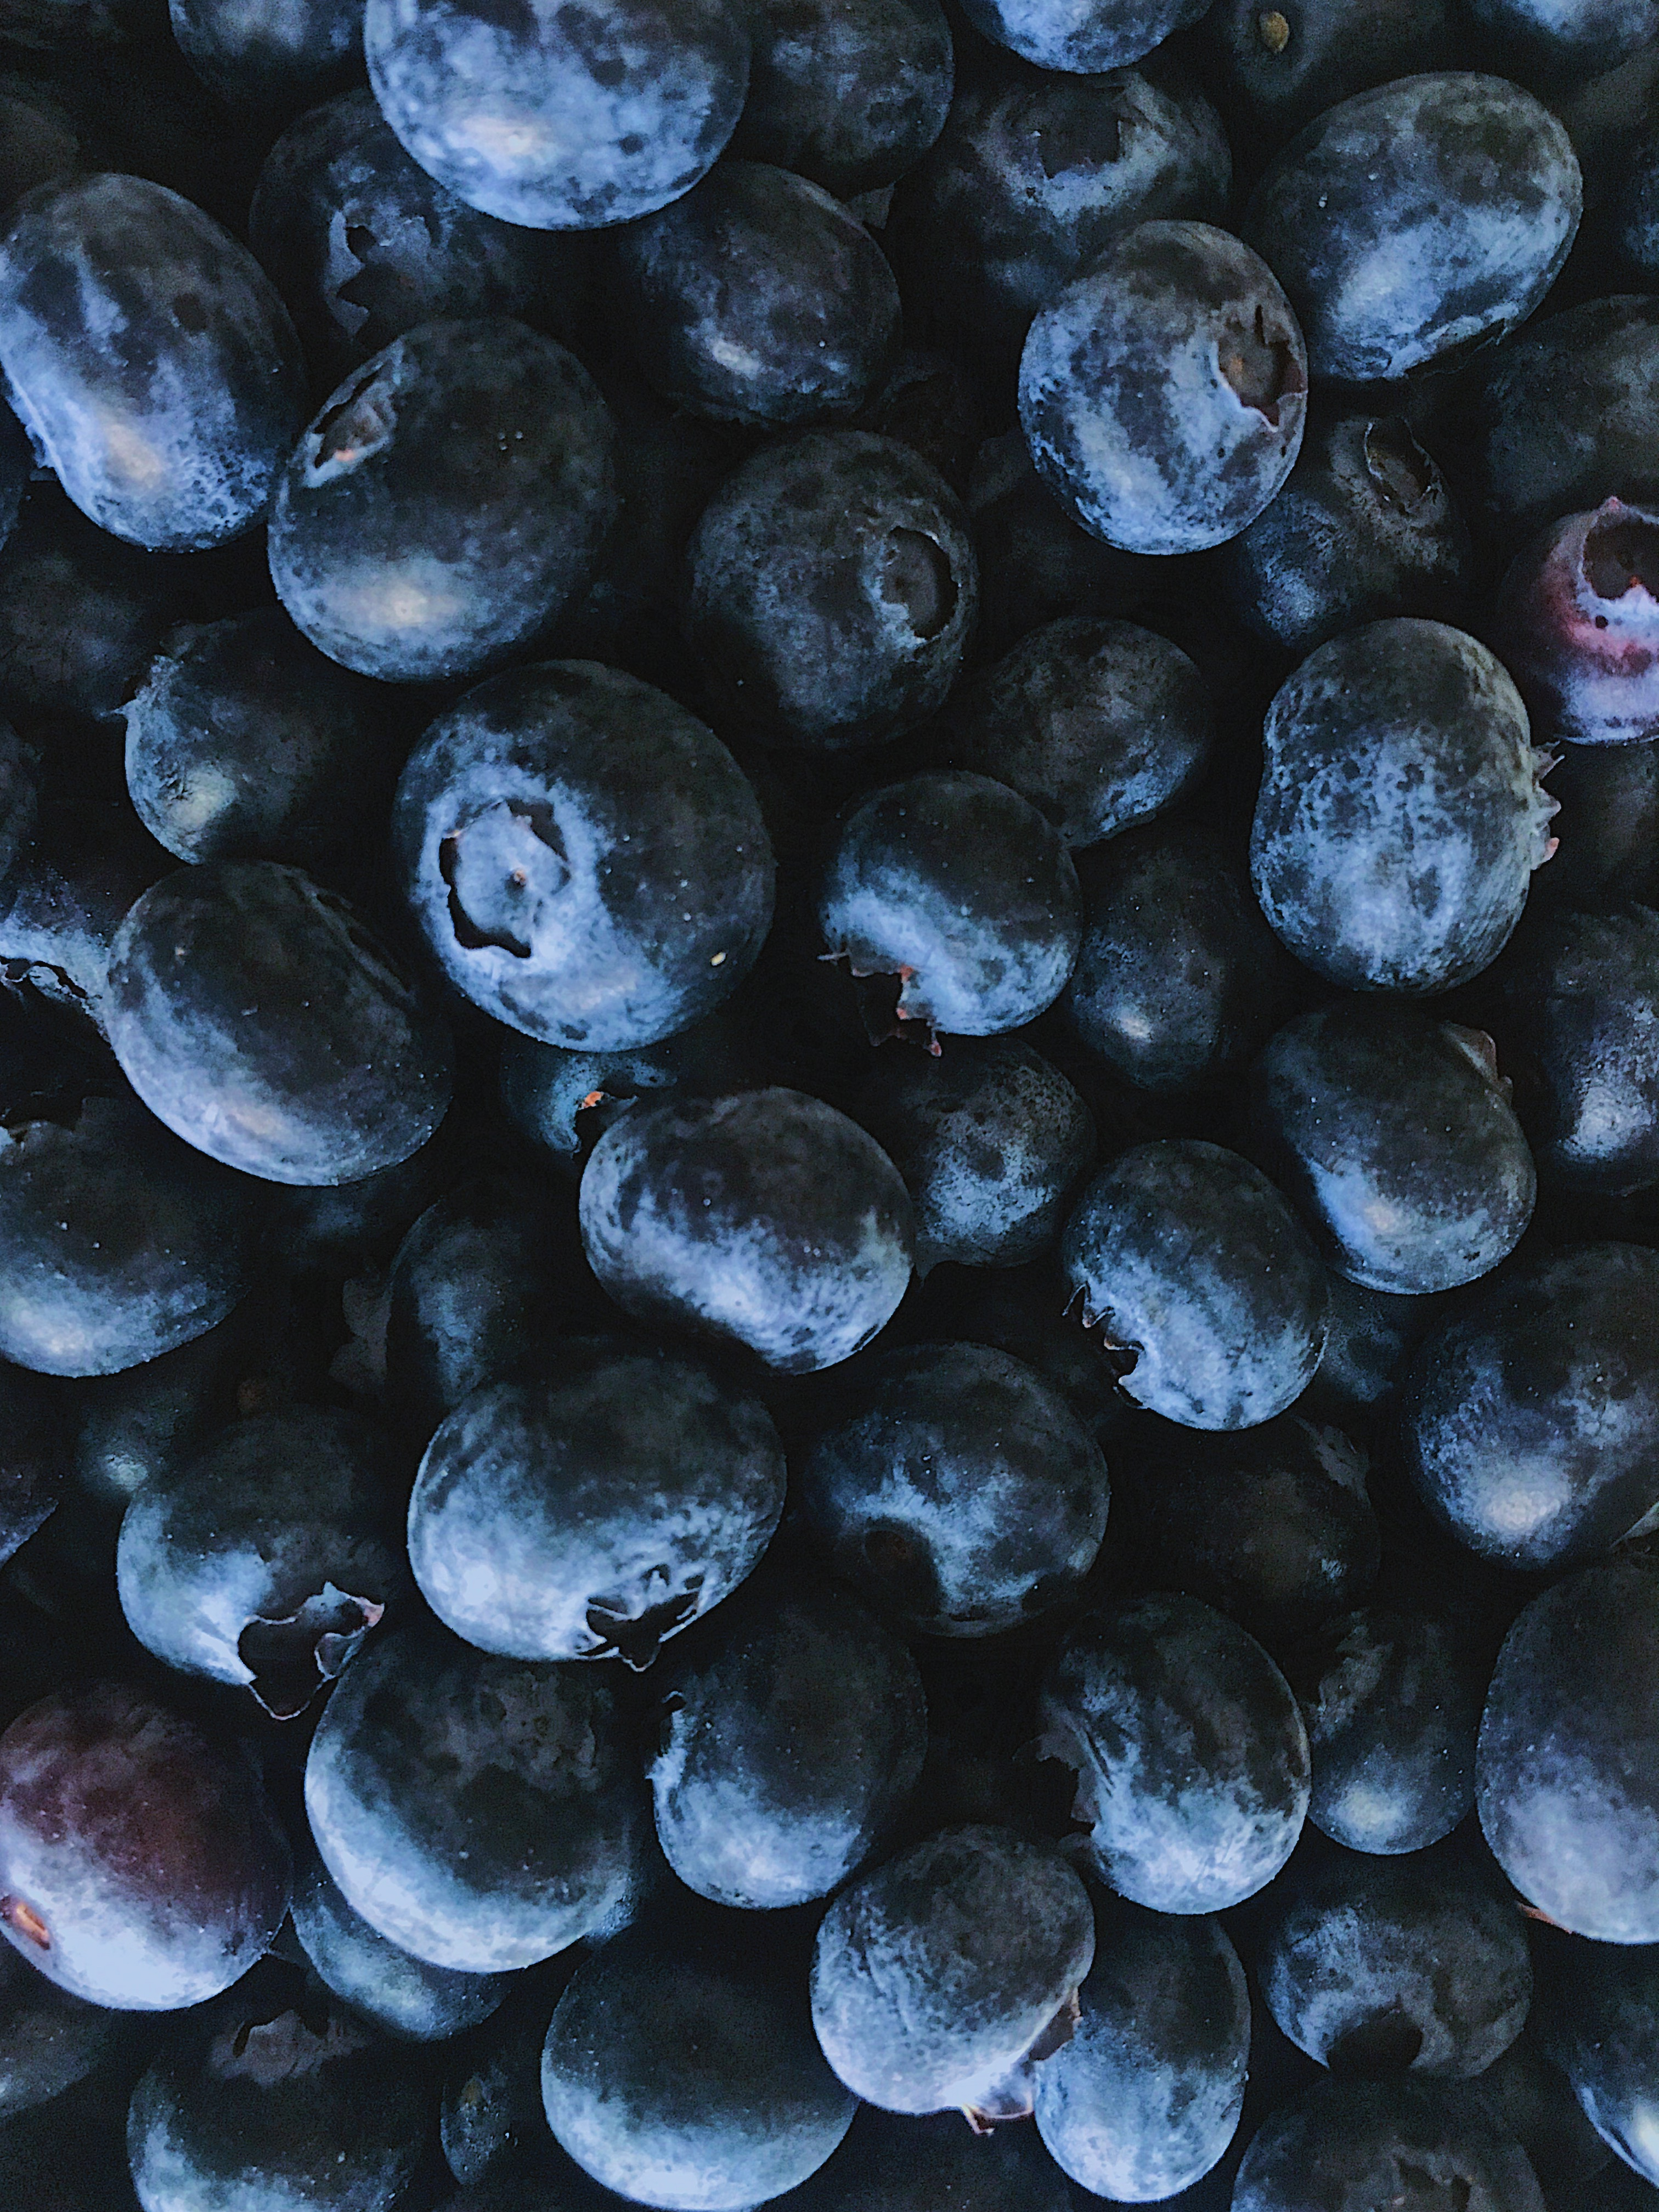 close up image of blueberries